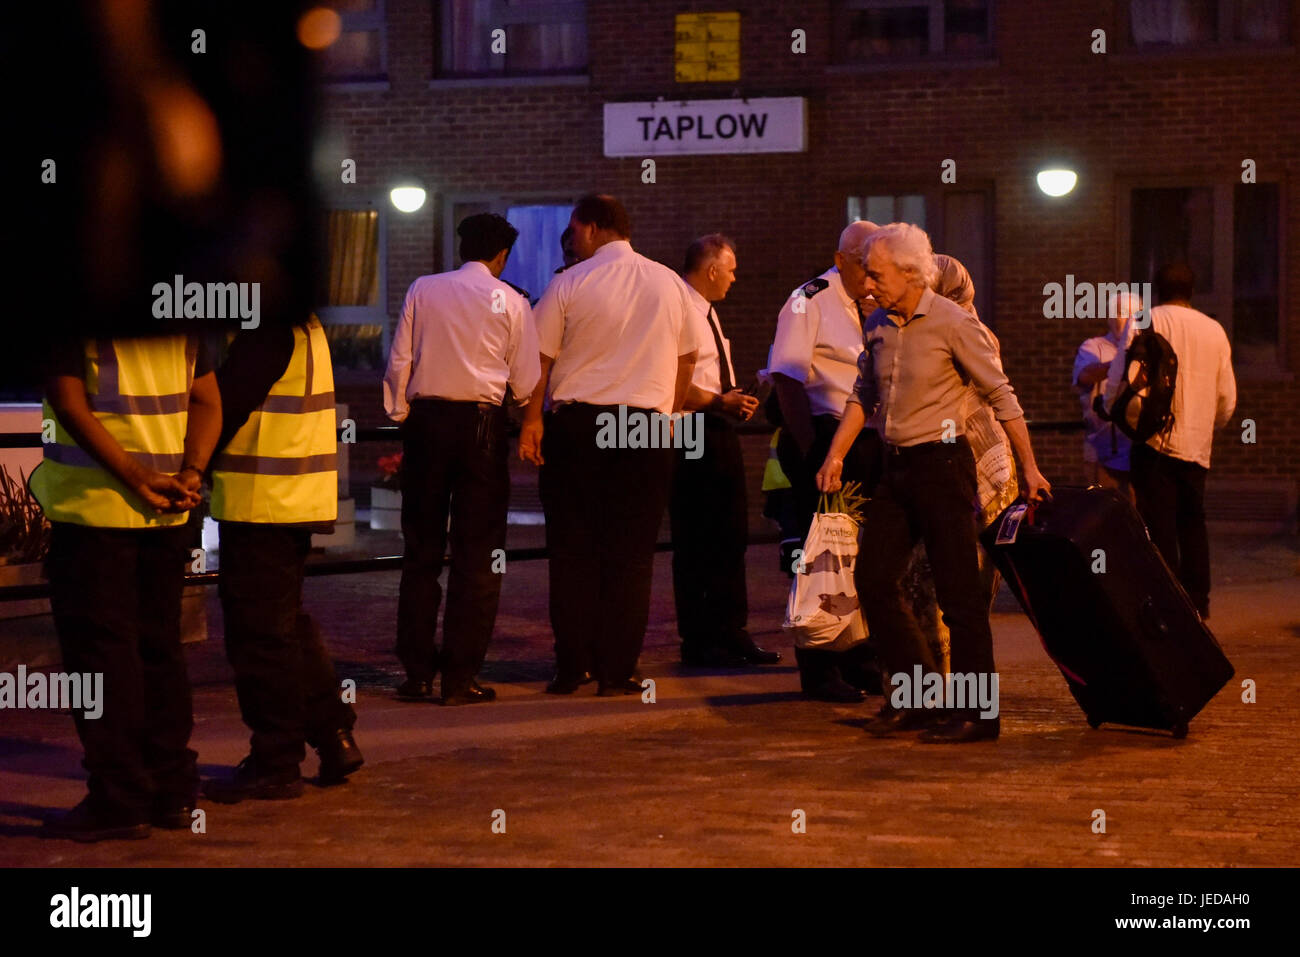 London, UK.  23 June 2017.  Residents evacuate Taplow block, one of five tower blocks in the Chalcots Estate. Residents - Stock Image